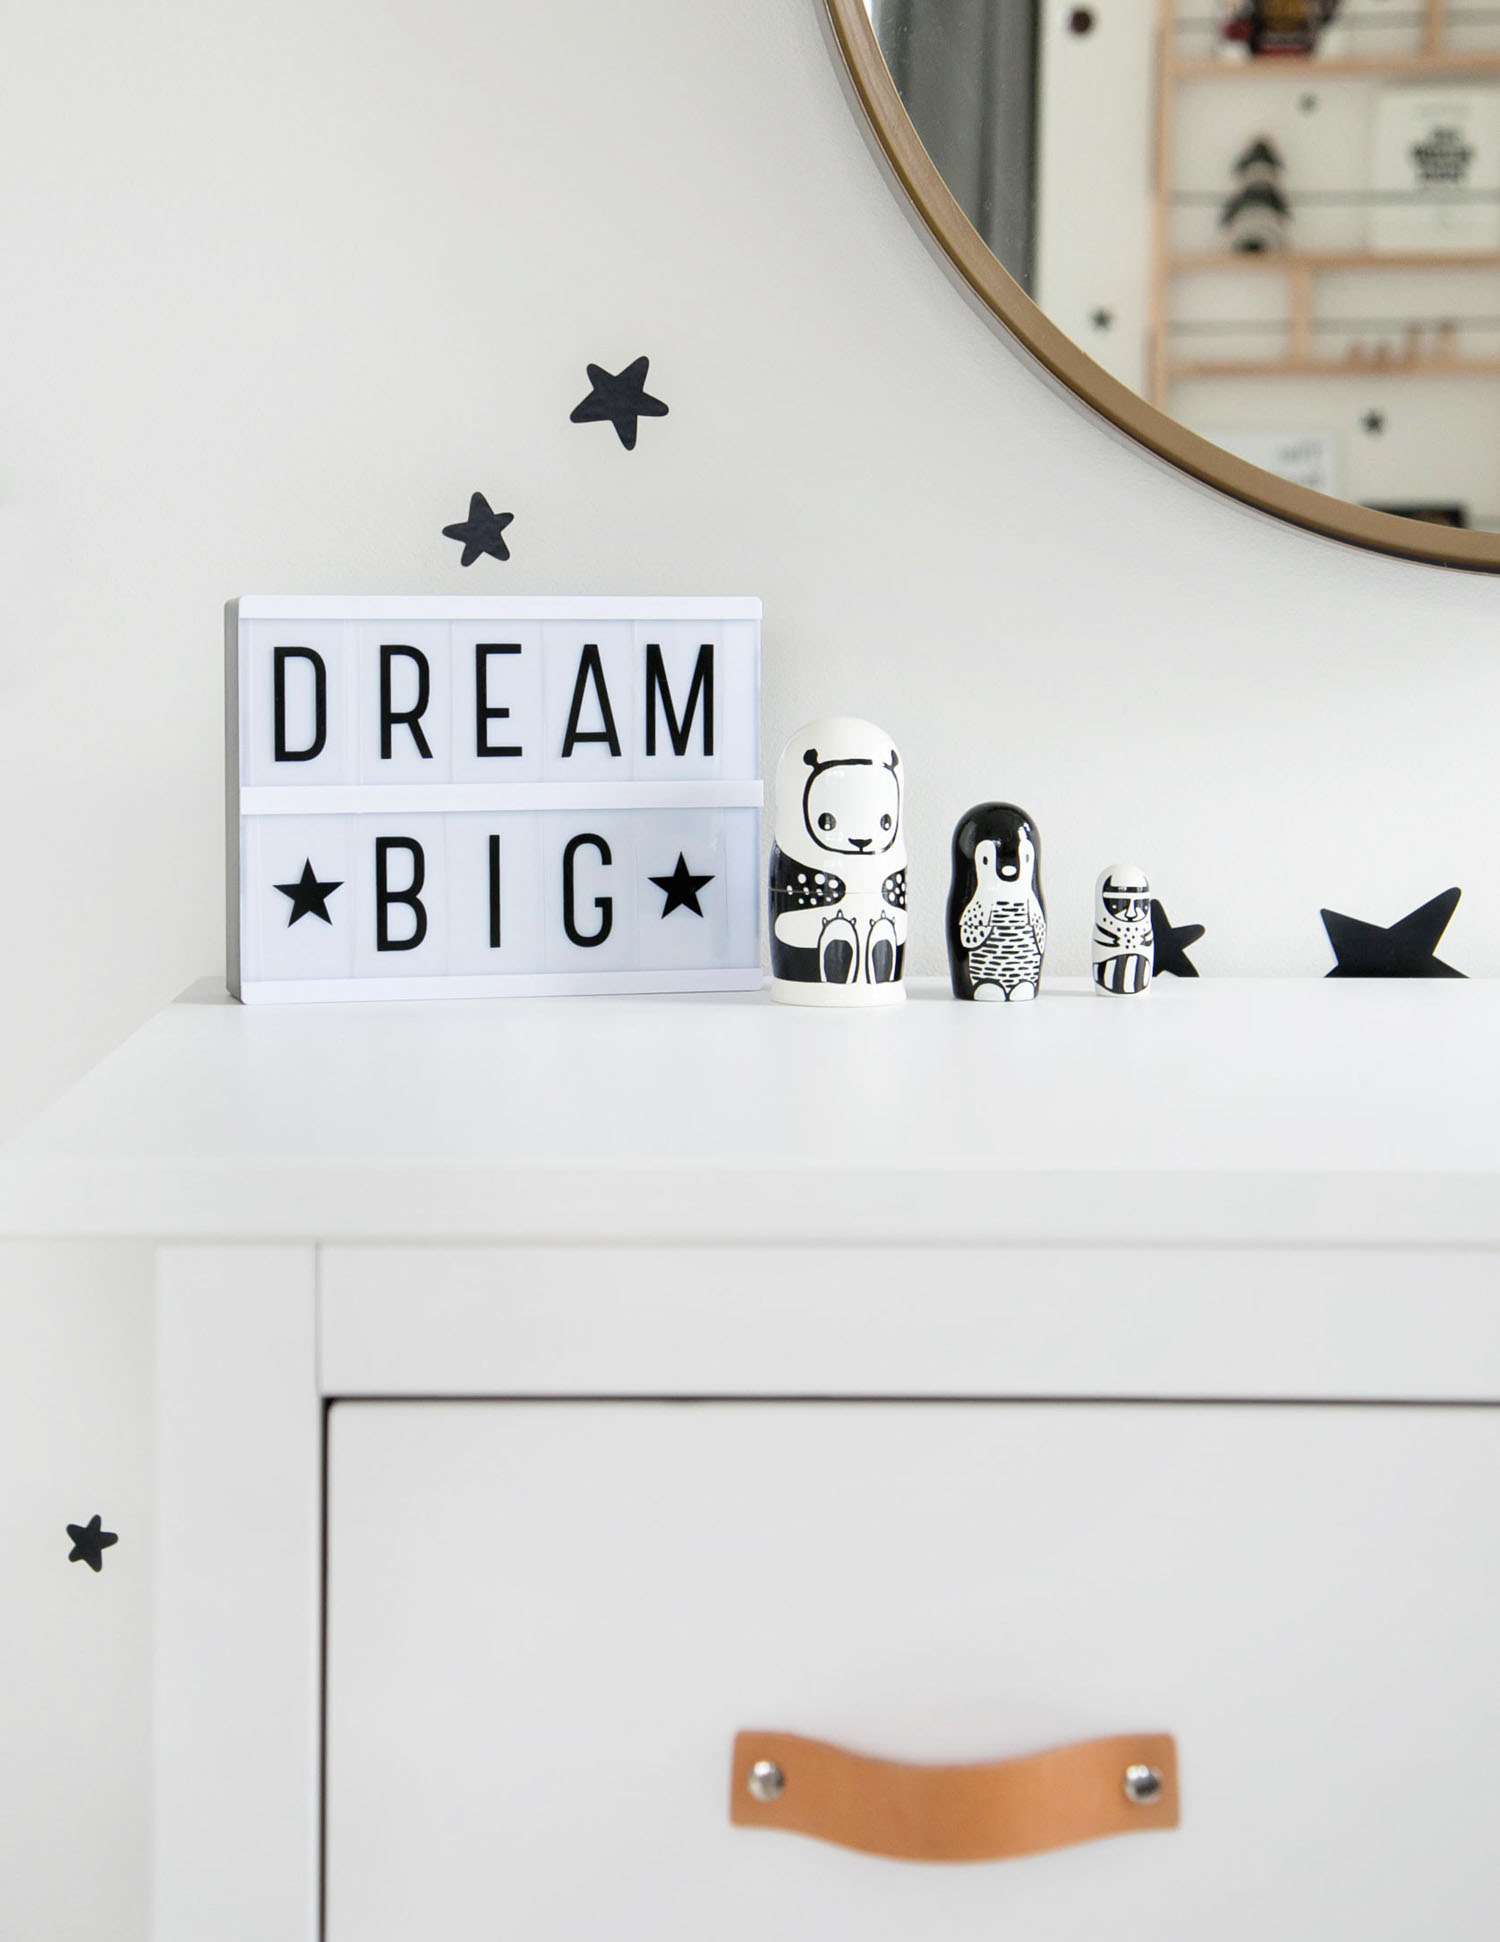 dream big and nesting dolls in vancouver kids room